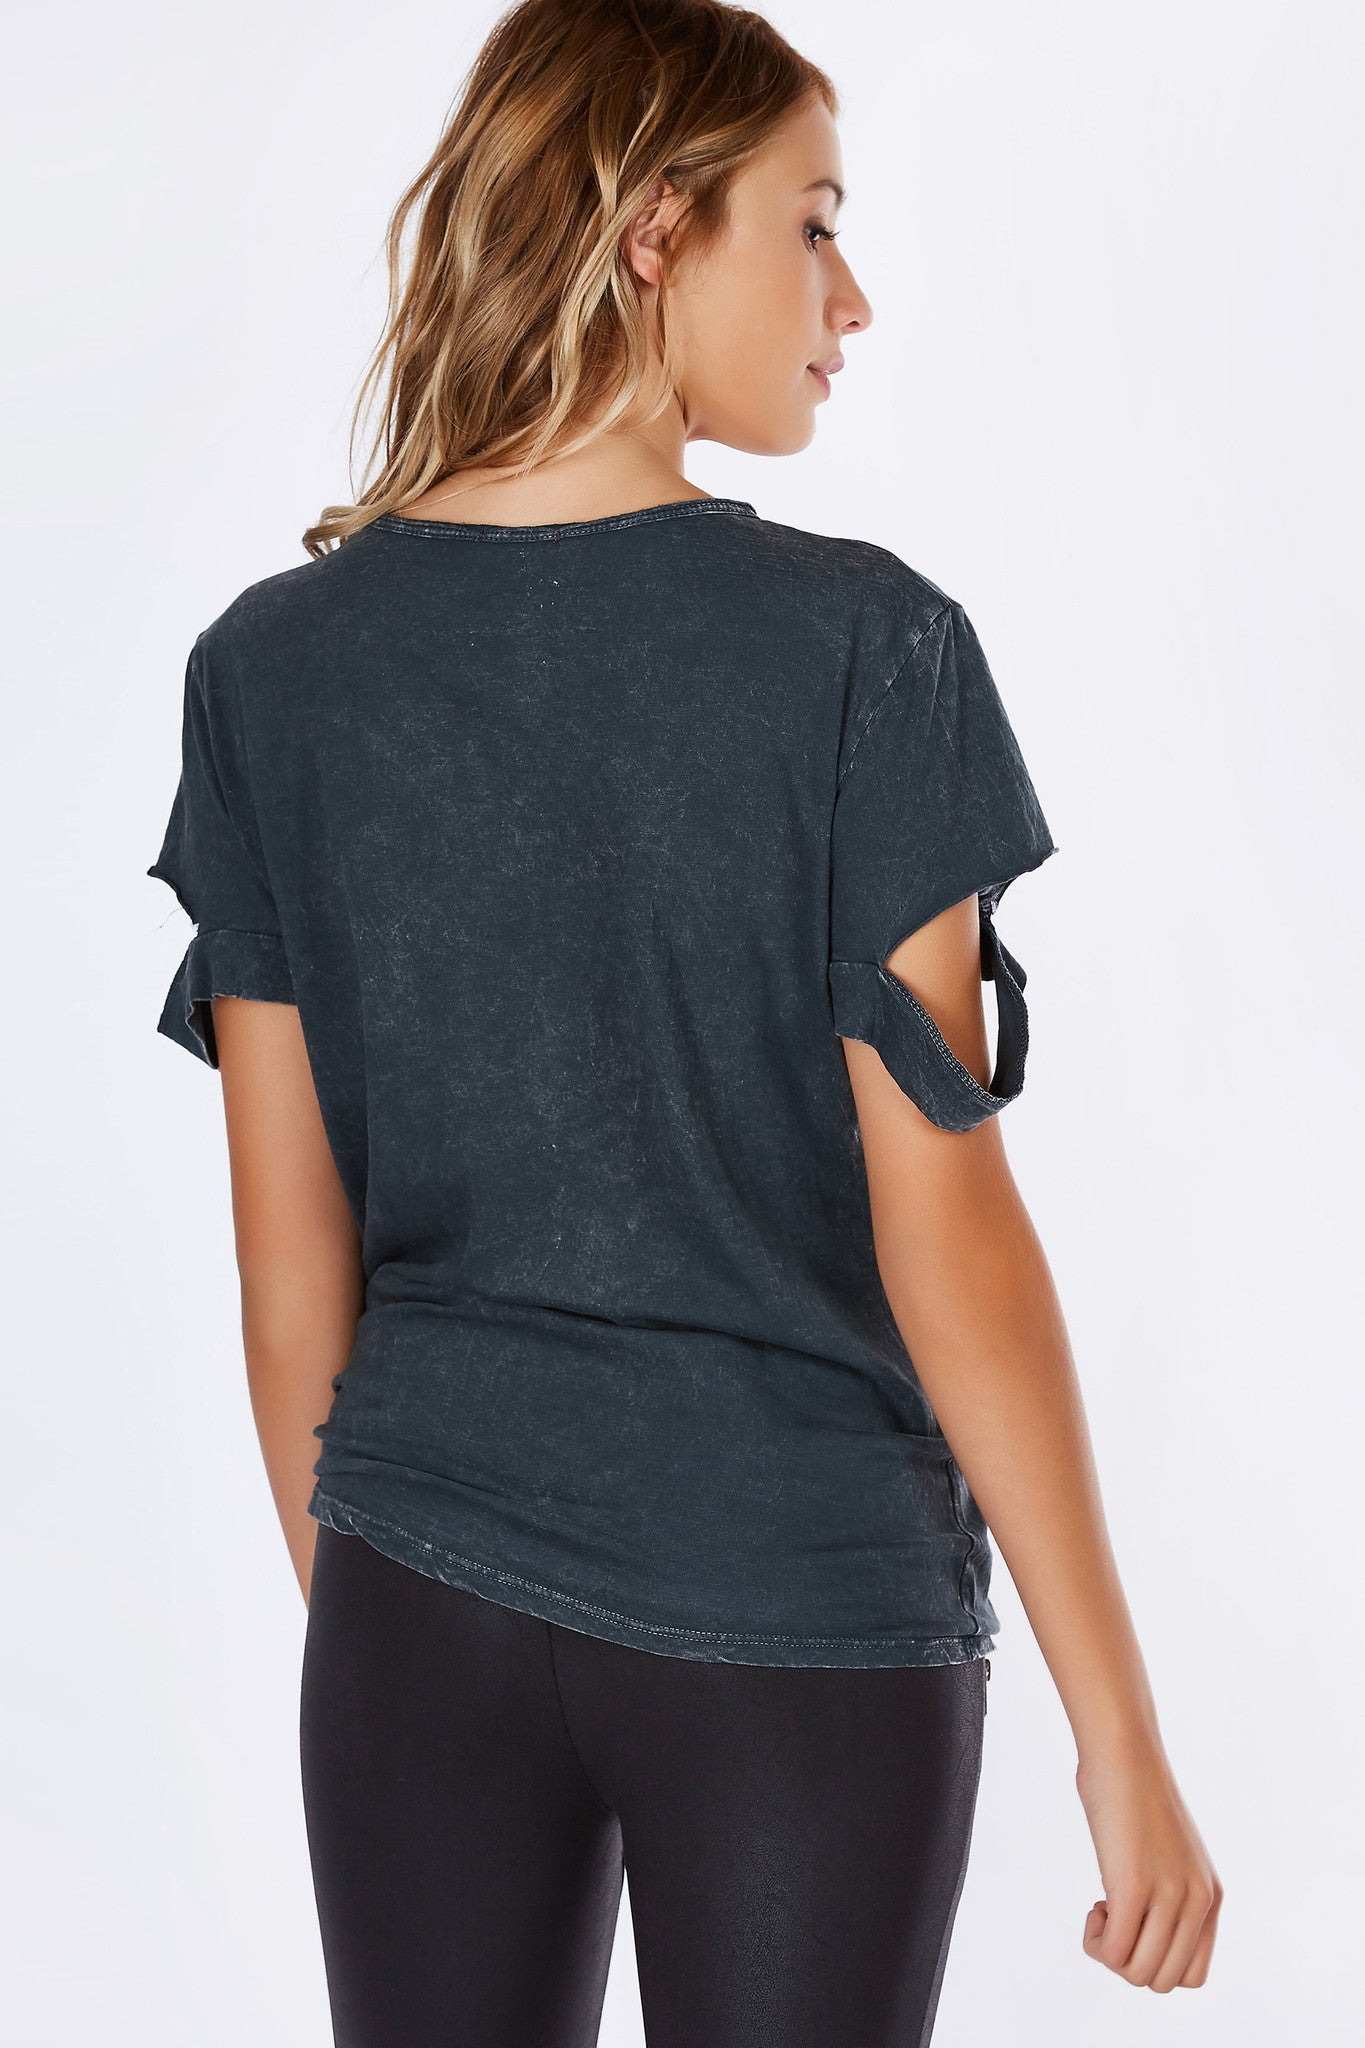 A basic pocket tee with a vintage-esque washed out finish. Distressed slits on sleeves for a trendy twist. Soft lightweight material makes for a perfect every day top. Pair with skinny jeans and sneakers for a casual outfit.